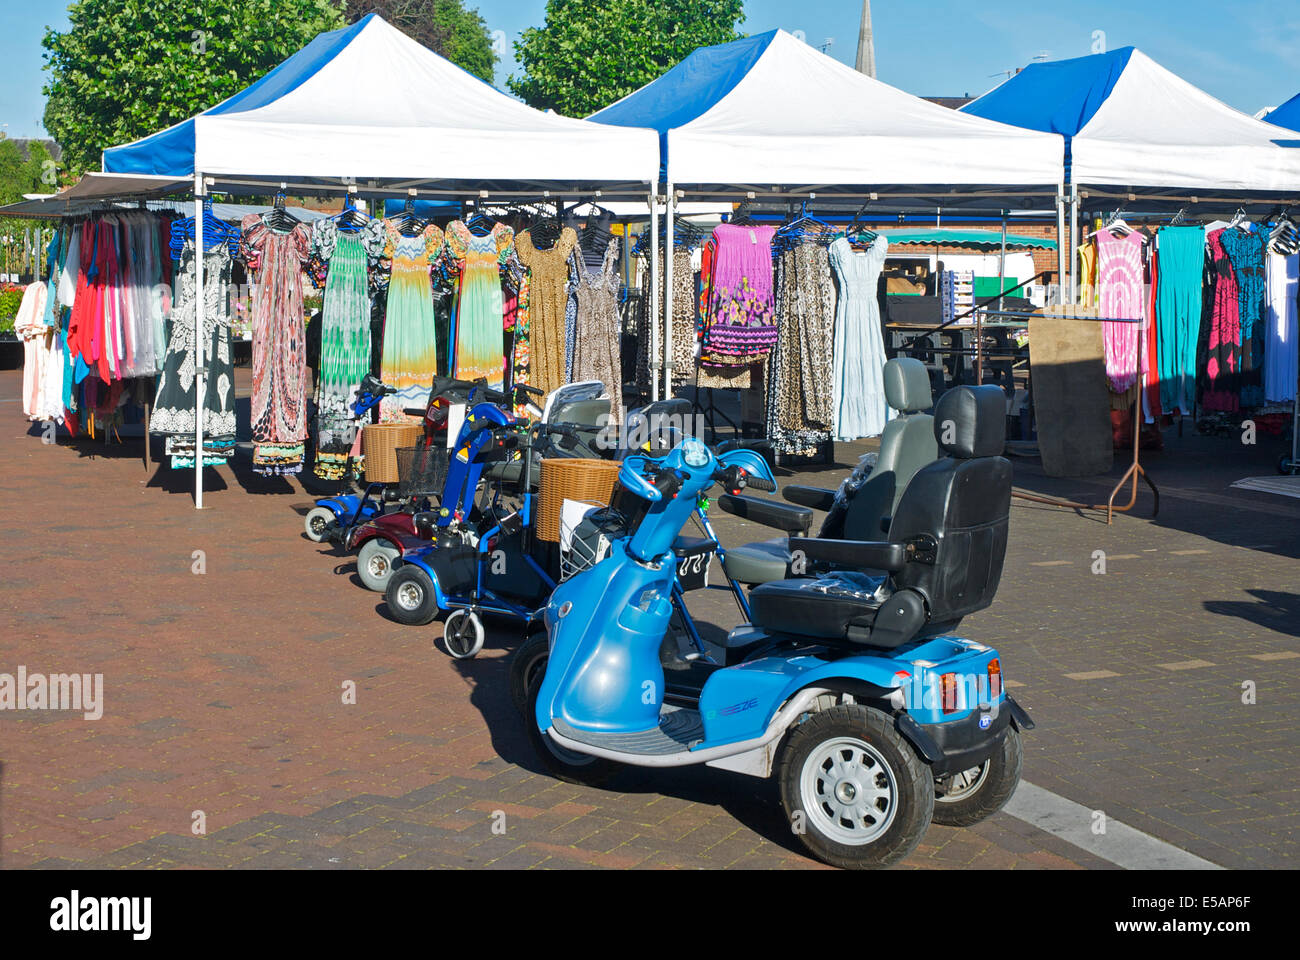 Mobility scooters on sale in Petersfield market, Hampshire, England UK - Stock Image